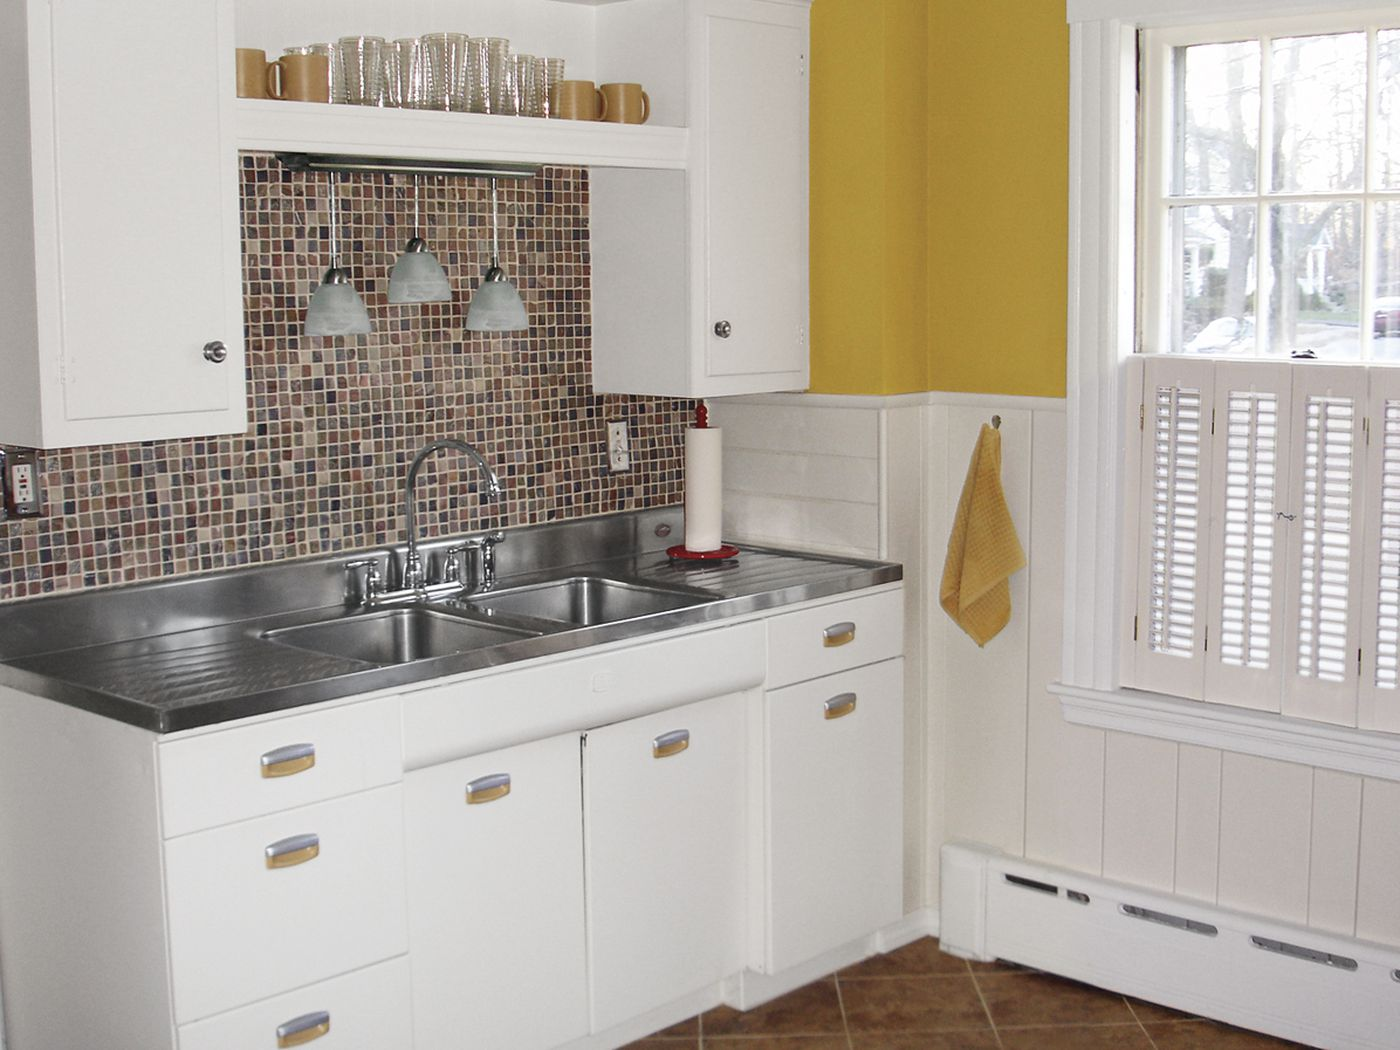 The 645 Kitchen Remodel This Old House